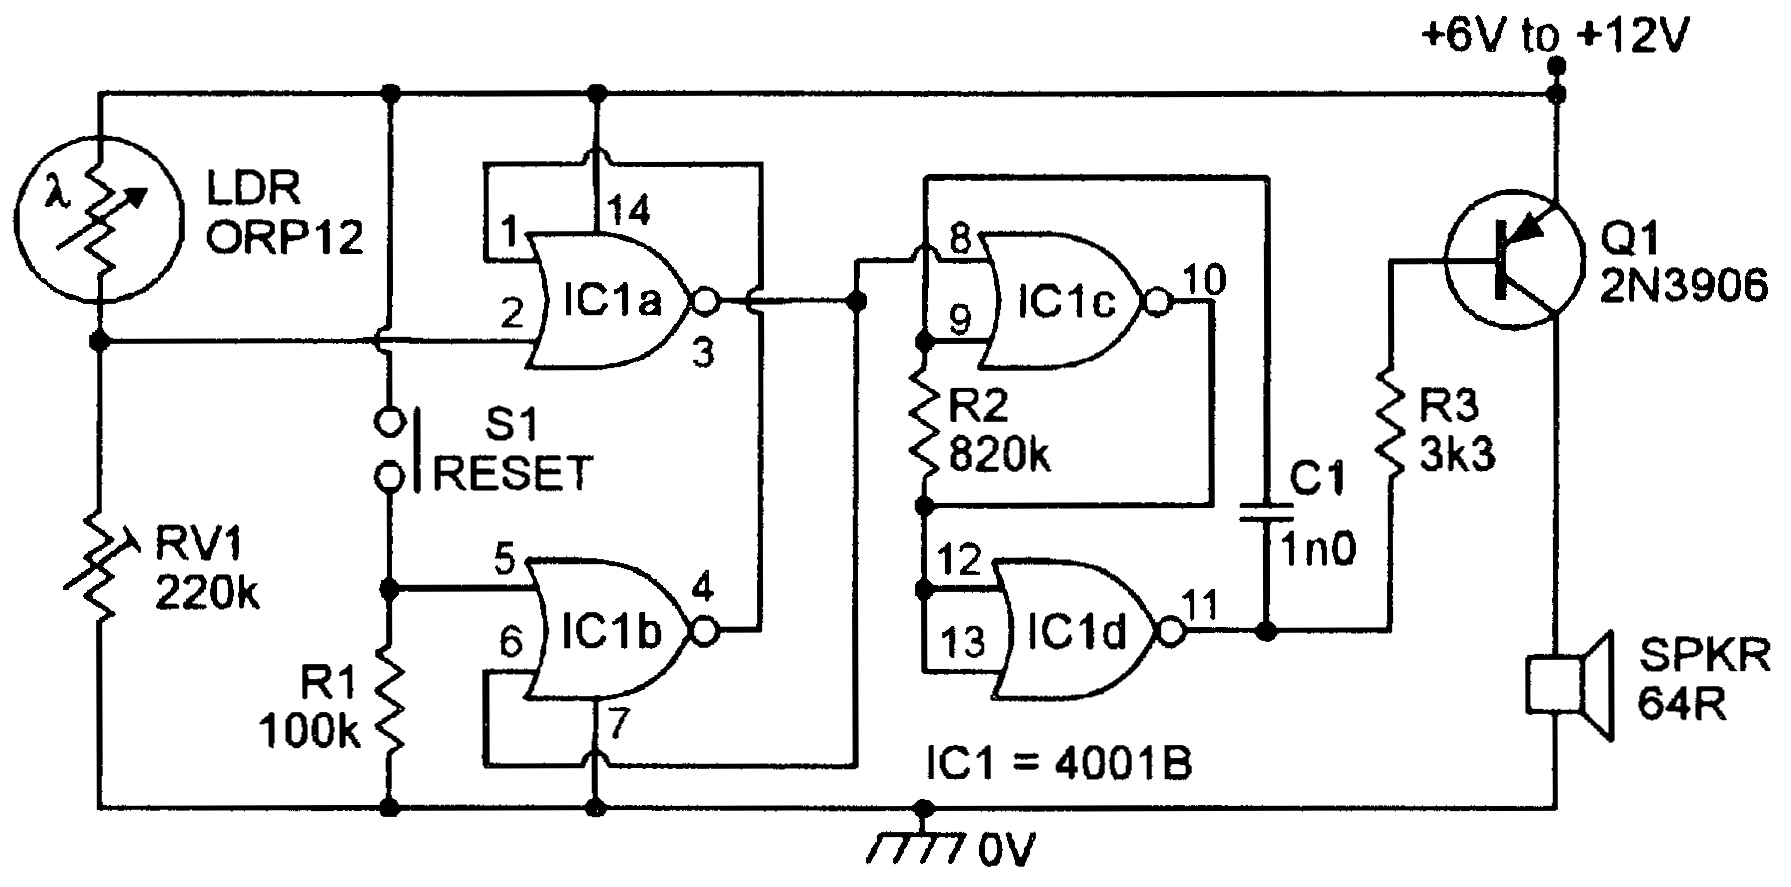 Light Sensitive Circuits Nuts Volts Magazine Switch And Sensor Ldr Circuit Also Simple Relay Diagram In Practice The Switching Point Of Each Individual 4001b Ic Is Very Stable Figure 7 Gives Activated Alarm